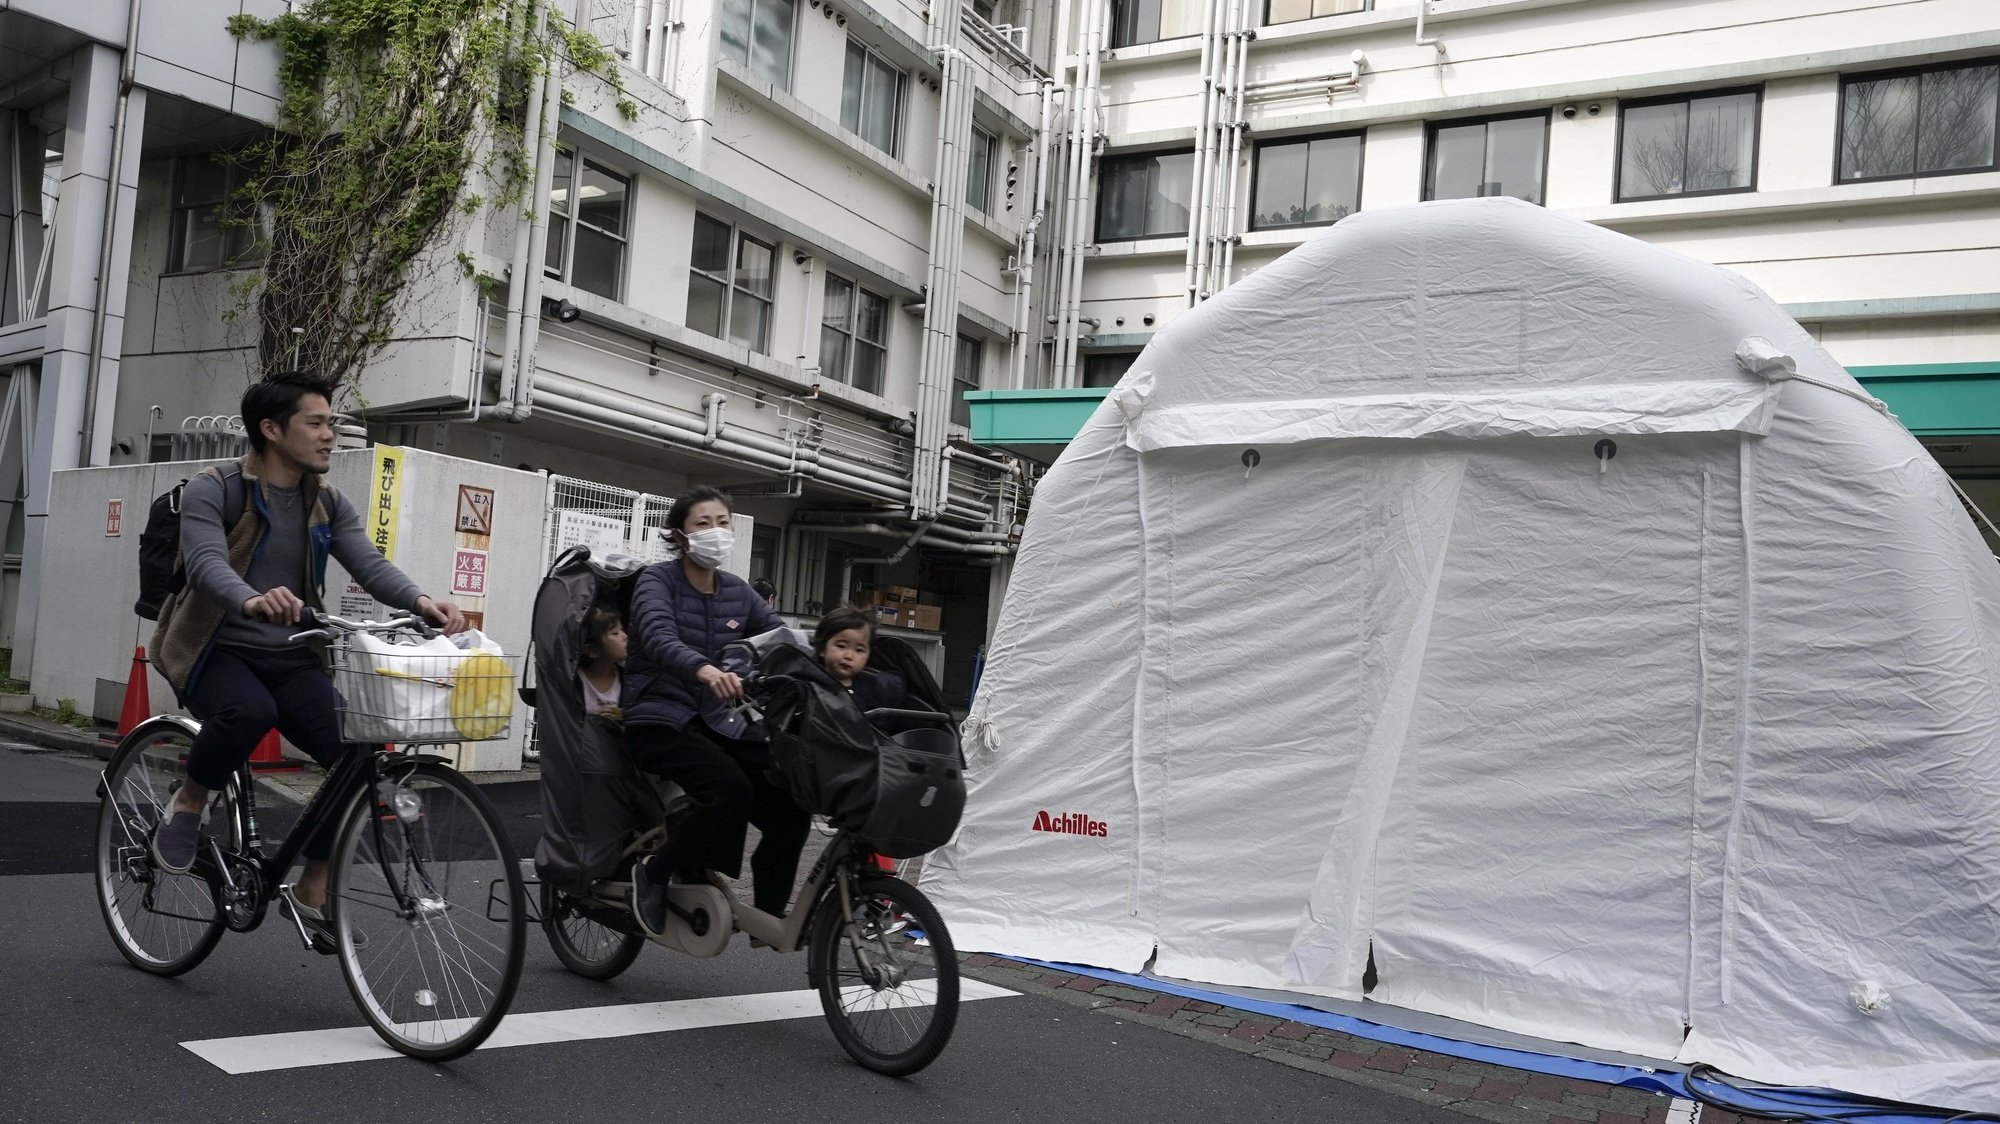 epa08374699 A family cycles past tents for COVID-19 testing outside Kawakita General Hospital in Tokyo, Japan, 21 April 2020. Japan has recently witnessed a sharp rise in infections. Prime Minister Shinzo Abe declared on 16 April 2020 a nationwide state of emergency. According to media reports, a new wave of COVID-19 infections is threatening the country's healthcare system, with several hospitals forced to turn away sick people.  EPA/KIMIMASA MAYAMA